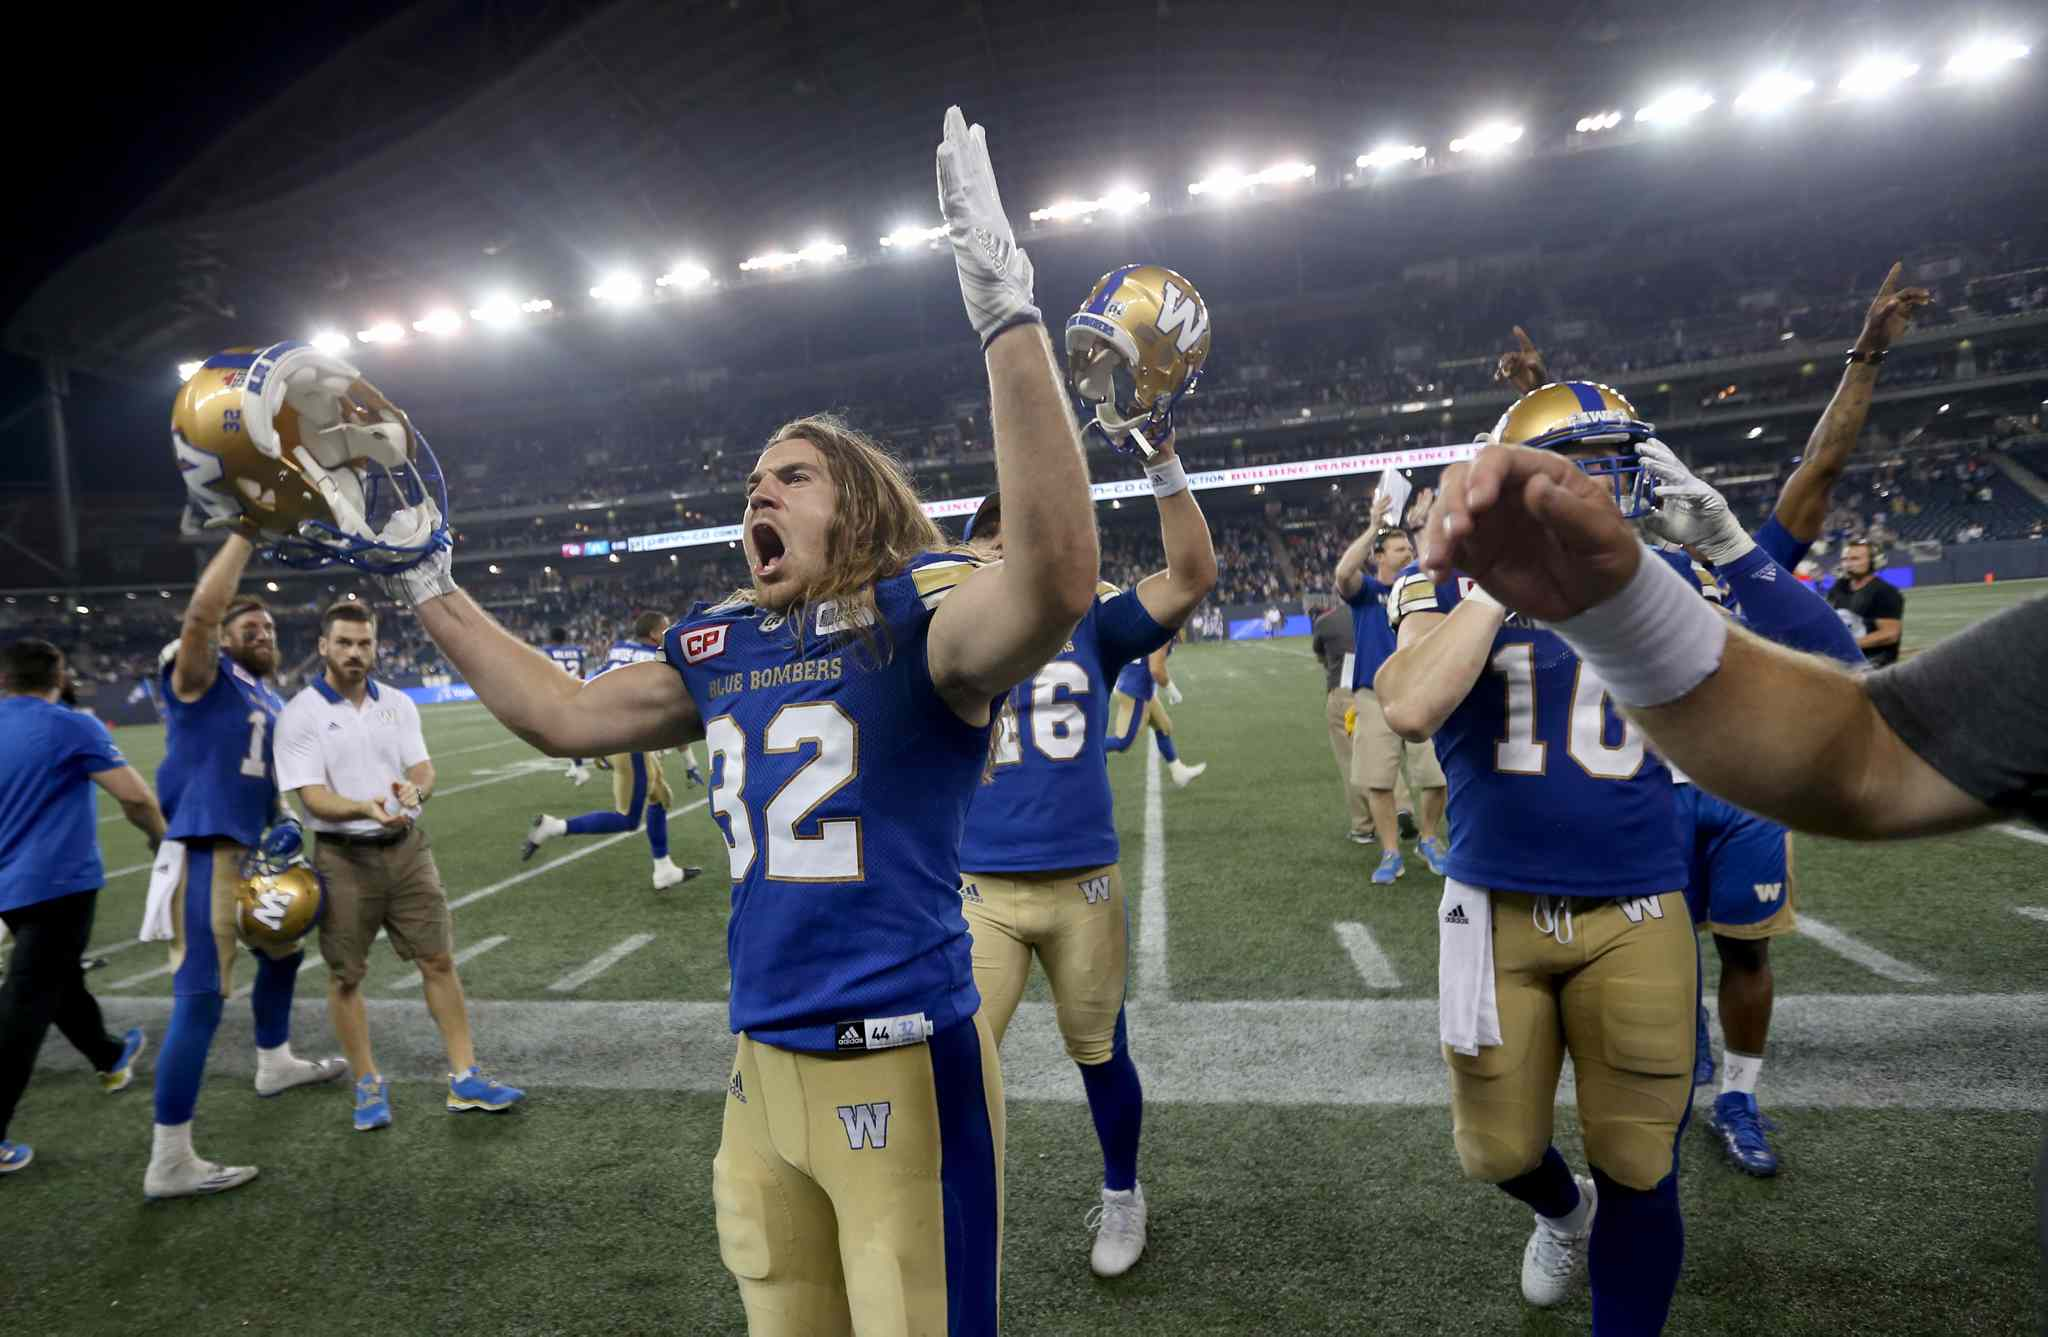 The Winnipeg Blue Bombers celebrate a dramatic come from behind victory over the Montreal Alouettes during CFL football action in Winnipeg on Thursday, July 27, 2017.